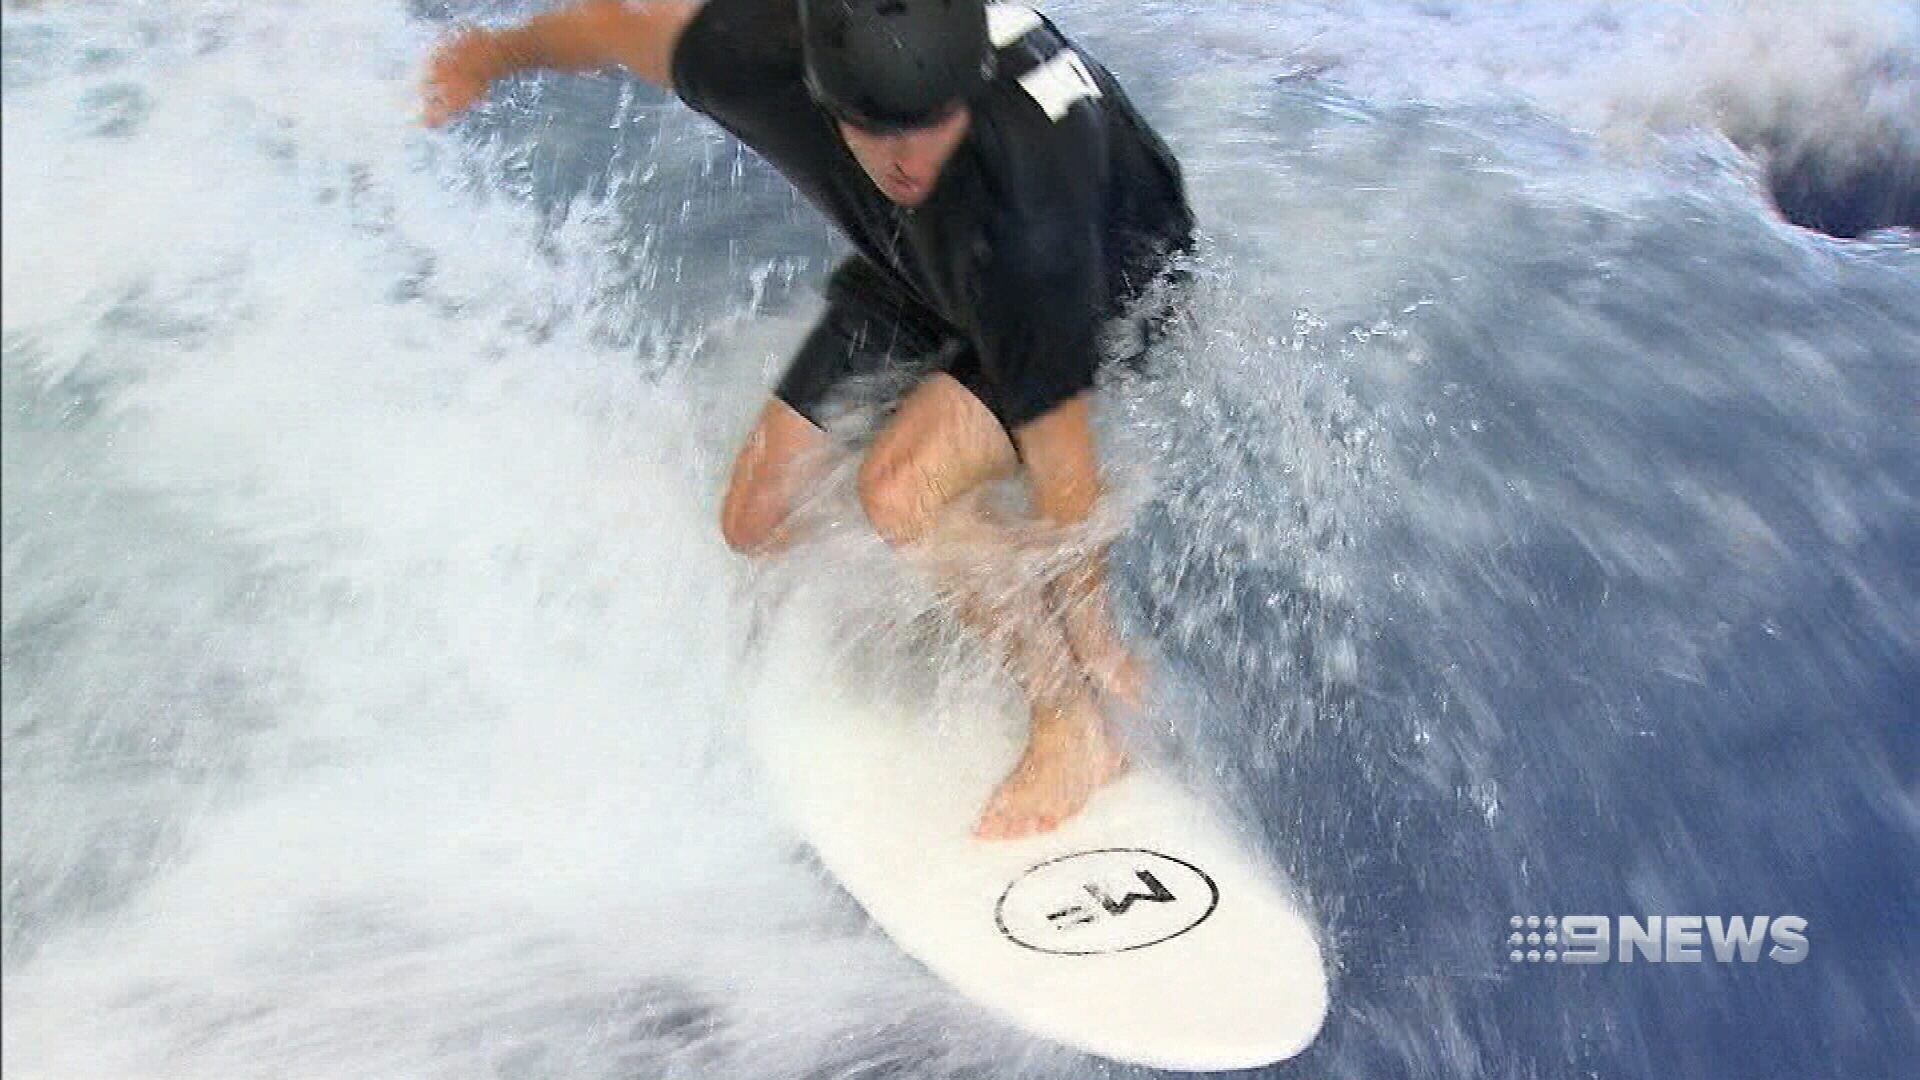 WA's first indoor wave park to open